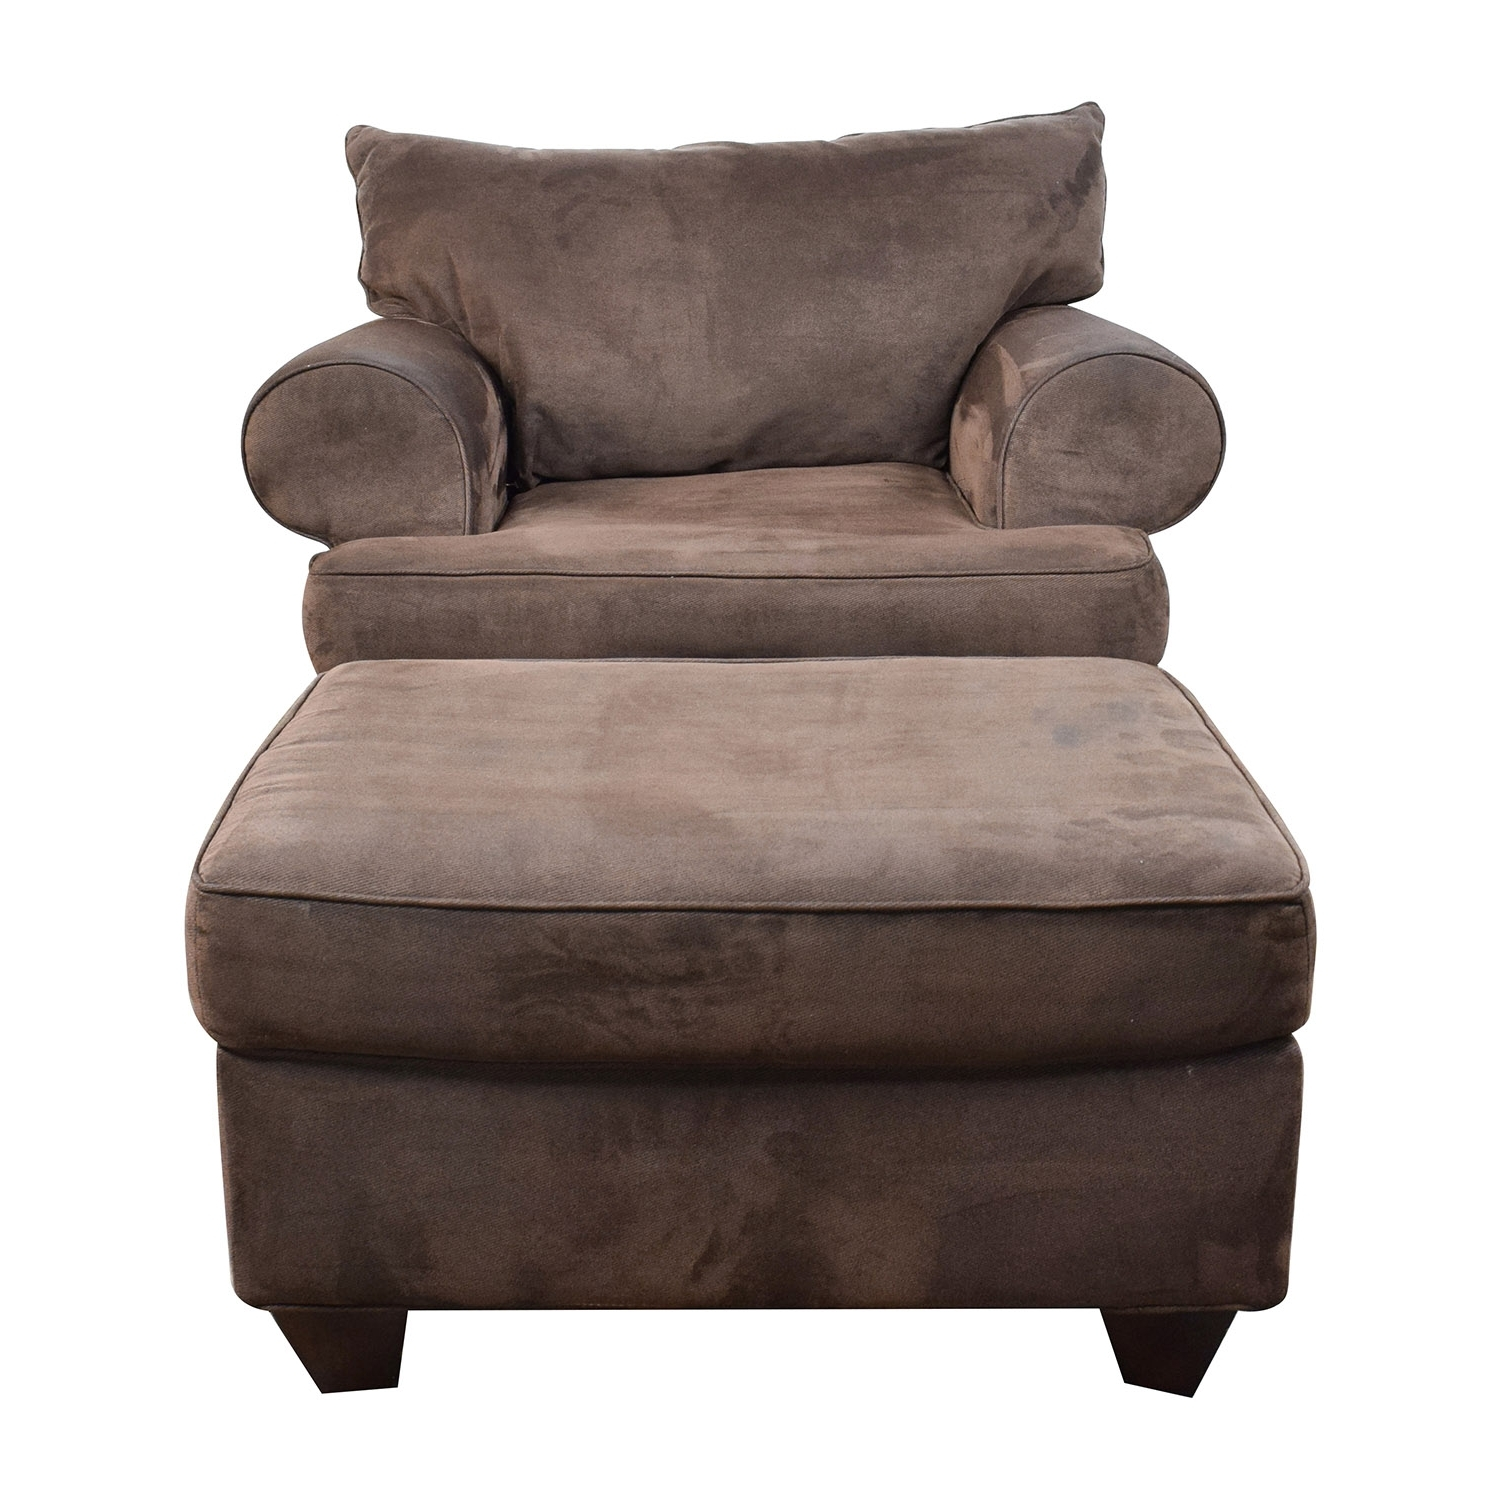 [%67% Off – Dark Brown Sofa Chair With Ottoman / Chairs Intended For Well Known Chairs With Ottoman|Chairs With Ottoman In Most Recently Released 67% Off – Dark Brown Sofa Chair With Ottoman / Chairs|Famous Chairs With Ottoman Regarding 67% Off – Dark Brown Sofa Chair With Ottoman / Chairs|Well Known 67% Off – Dark Brown Sofa Chair With Ottoman / Chairs Inside Chairs With Ottoman%] (View 6 of 15)